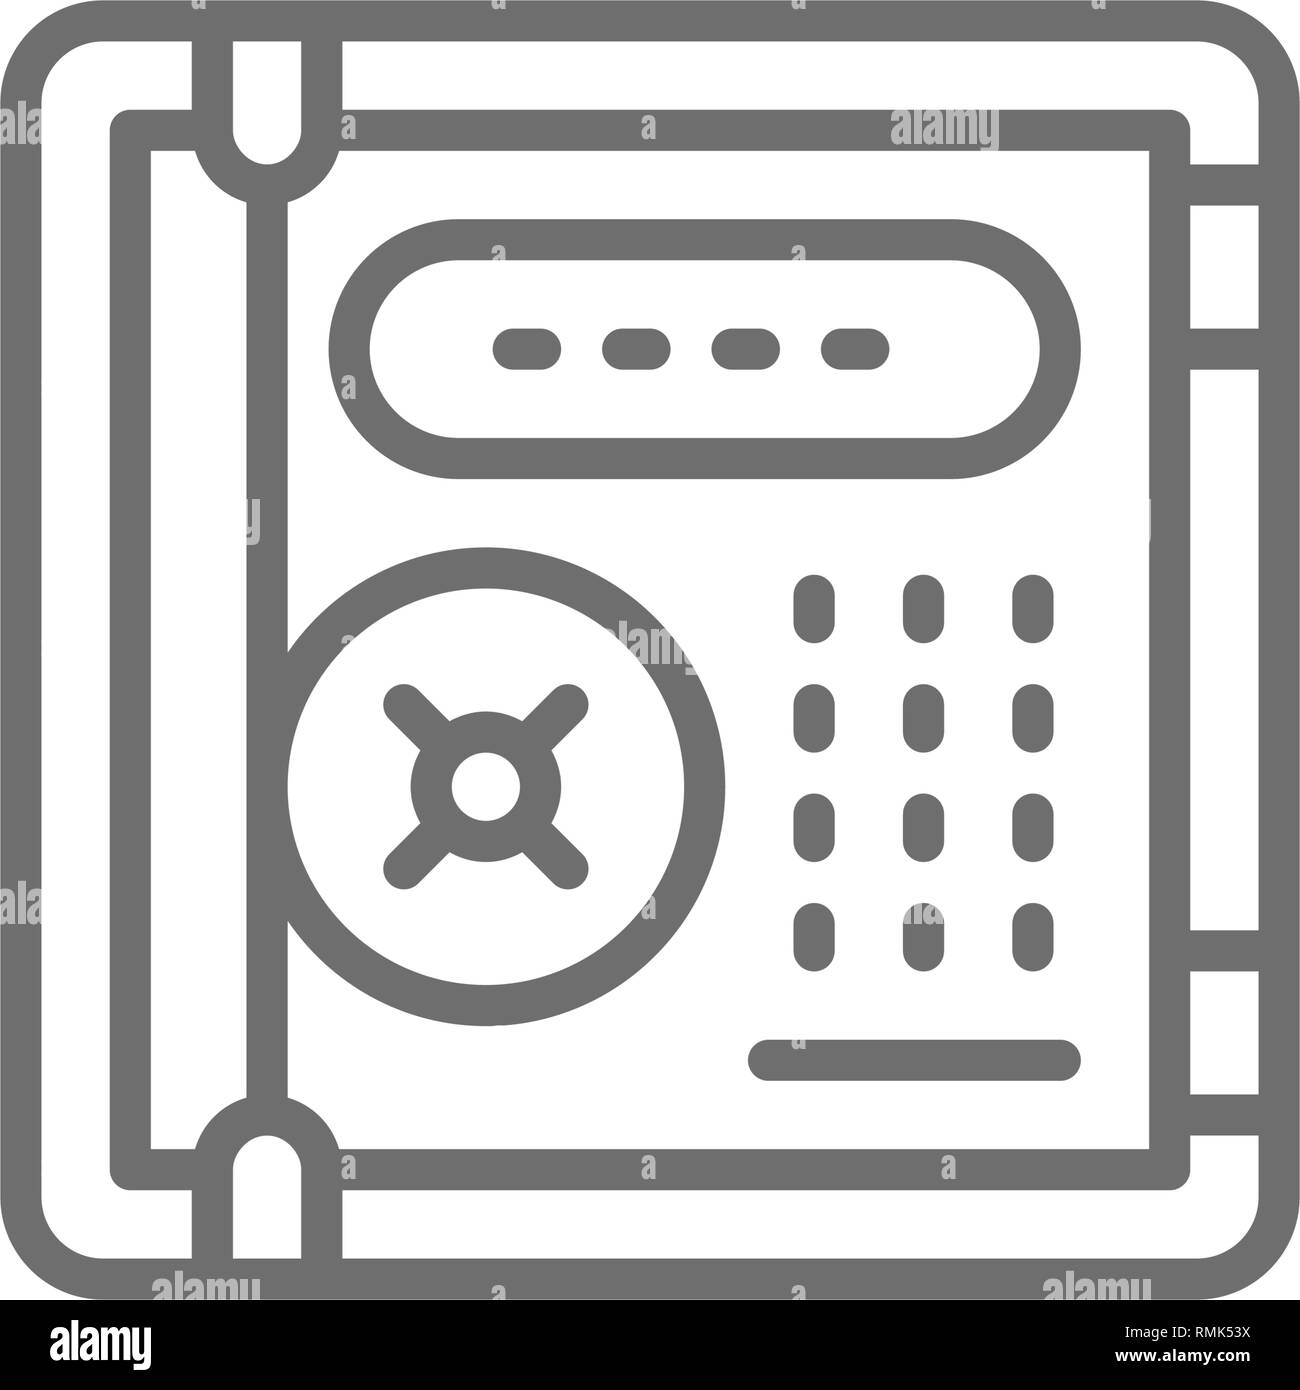 Electronic safe, personal protection, cryptography line icon. - Stock Image